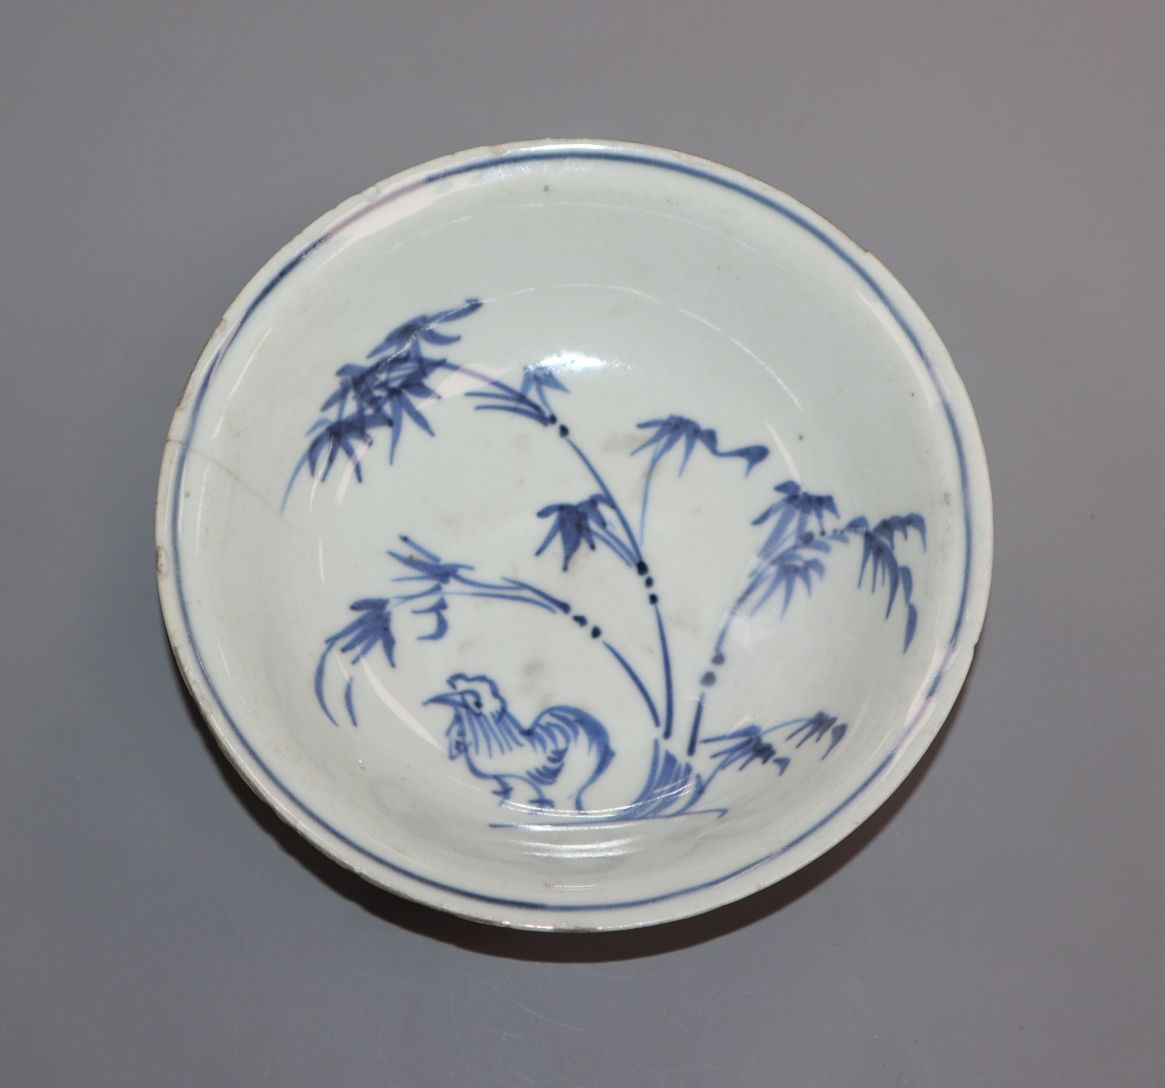 Lot 307 - A Chinese Wanli period blue and white 'cockerel' dish